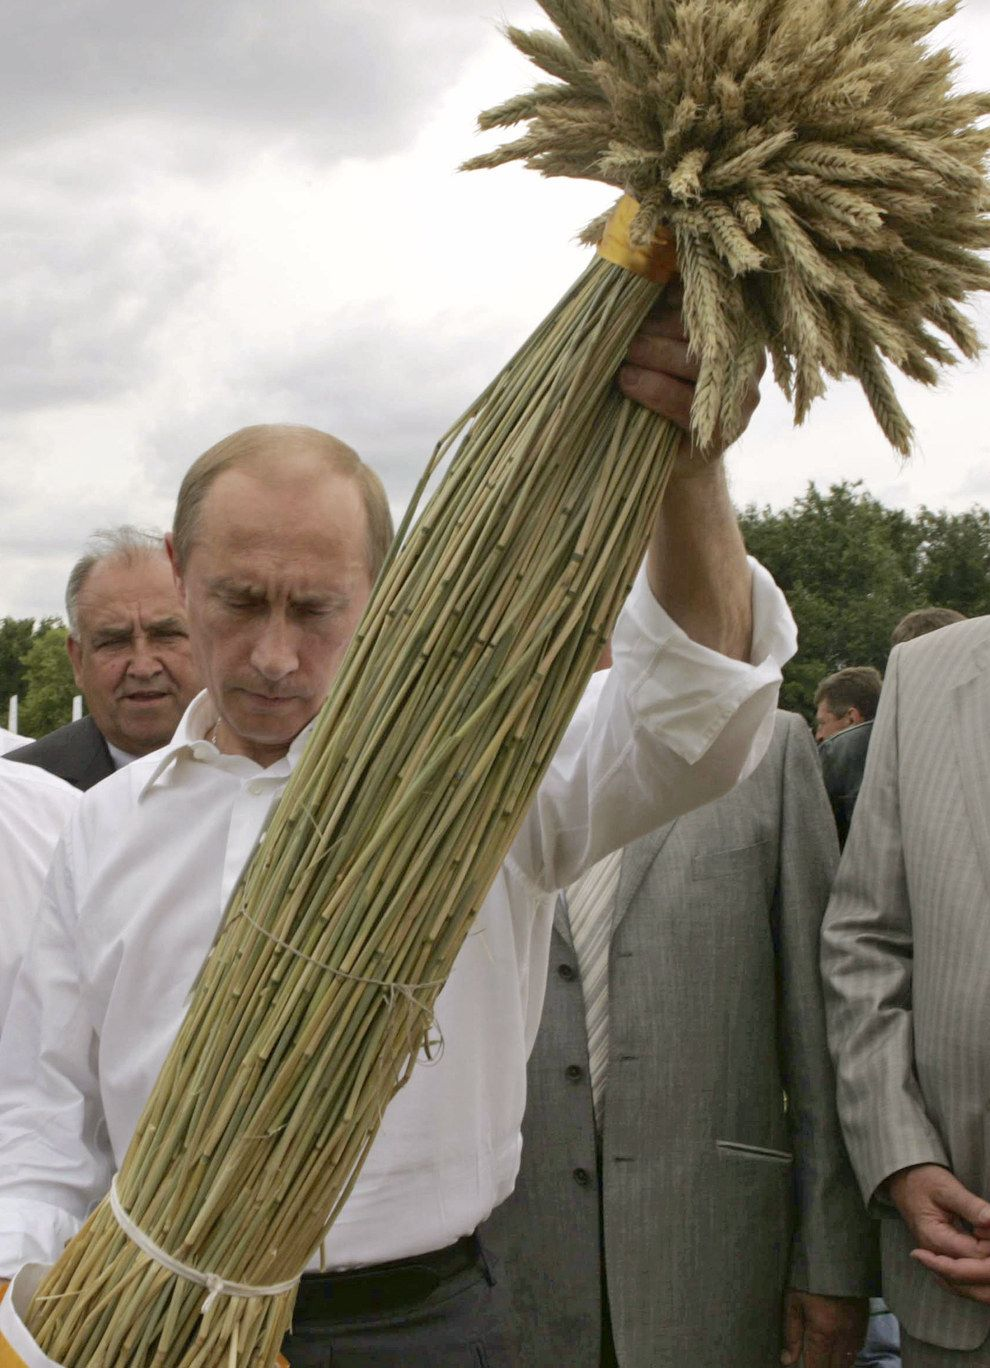 Putin looking at stalks of impressive wheat. | 48 Photos Of Vladimir Putin Looking At Things